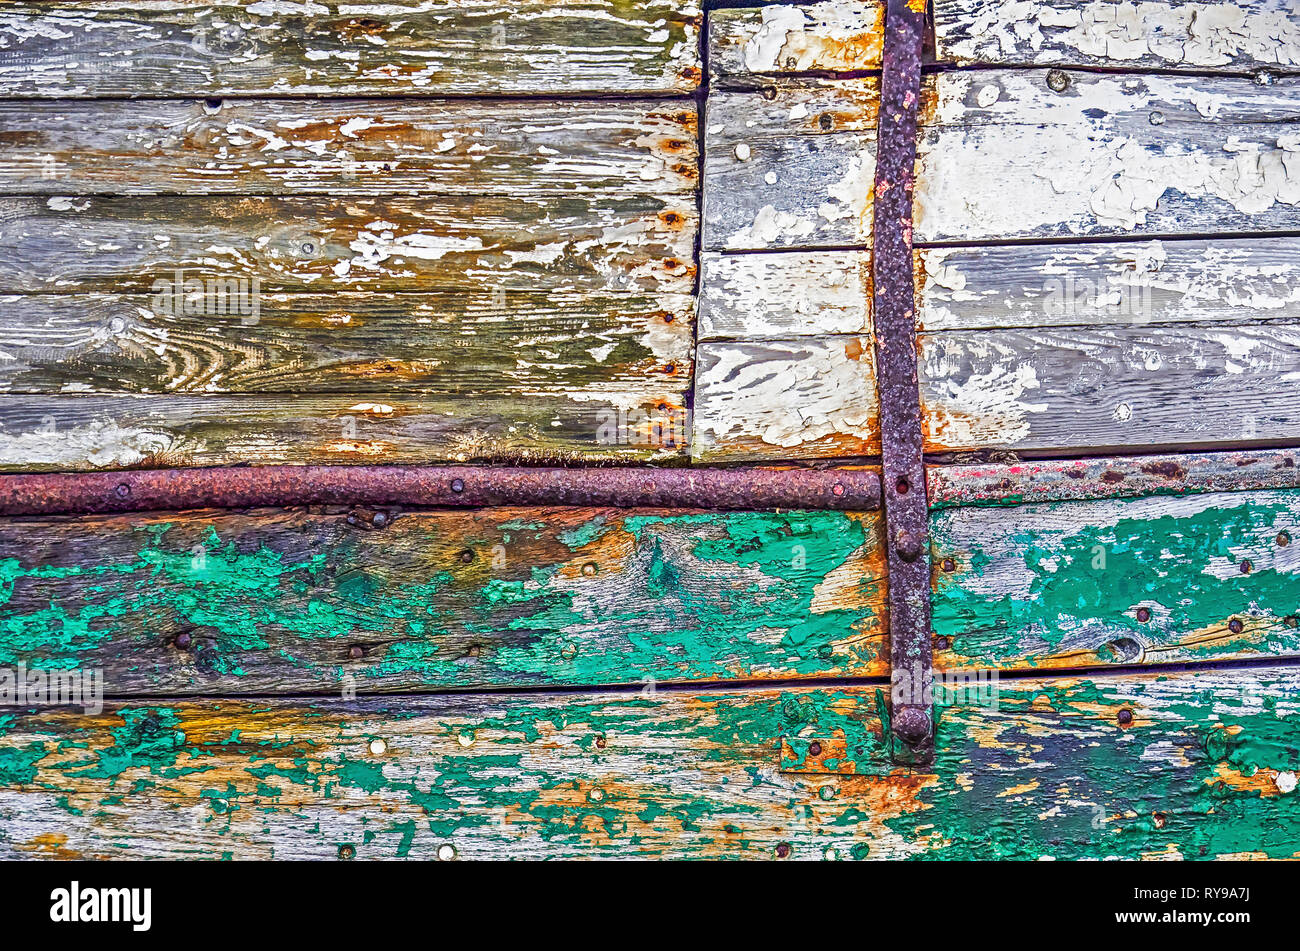 Fragment of a ship hull made of wooden planks and pieces of